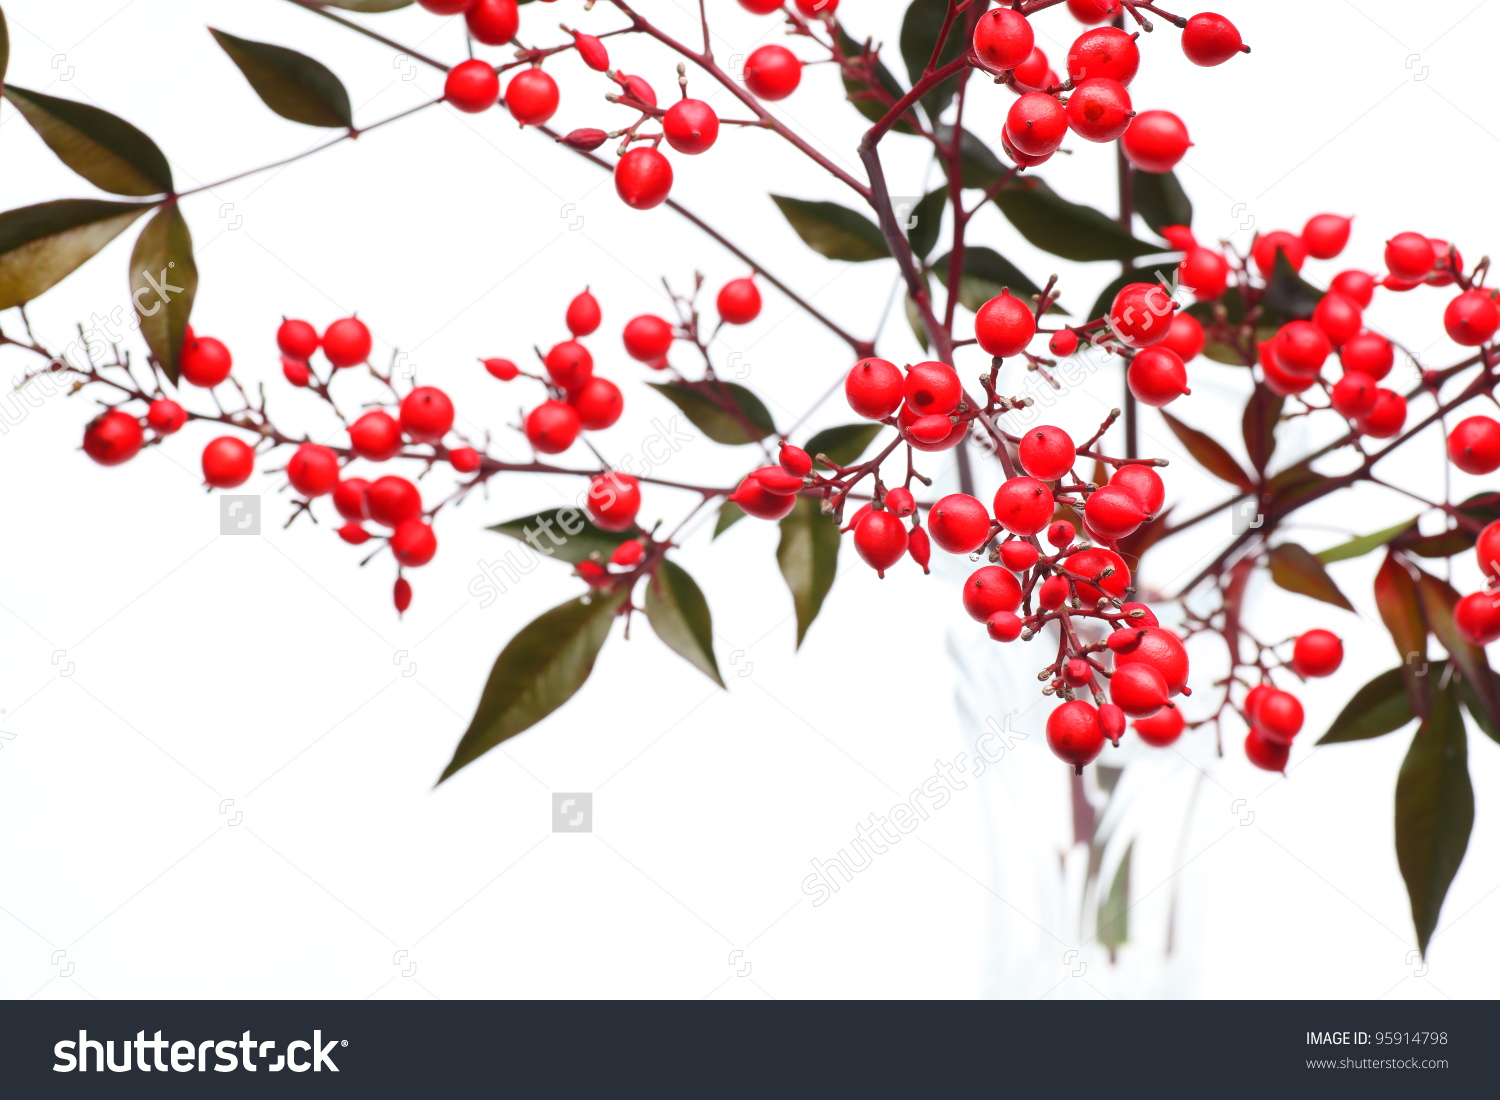 Nandina Domestica Red Berries Japanese Sacred Stock Photo 95914798.